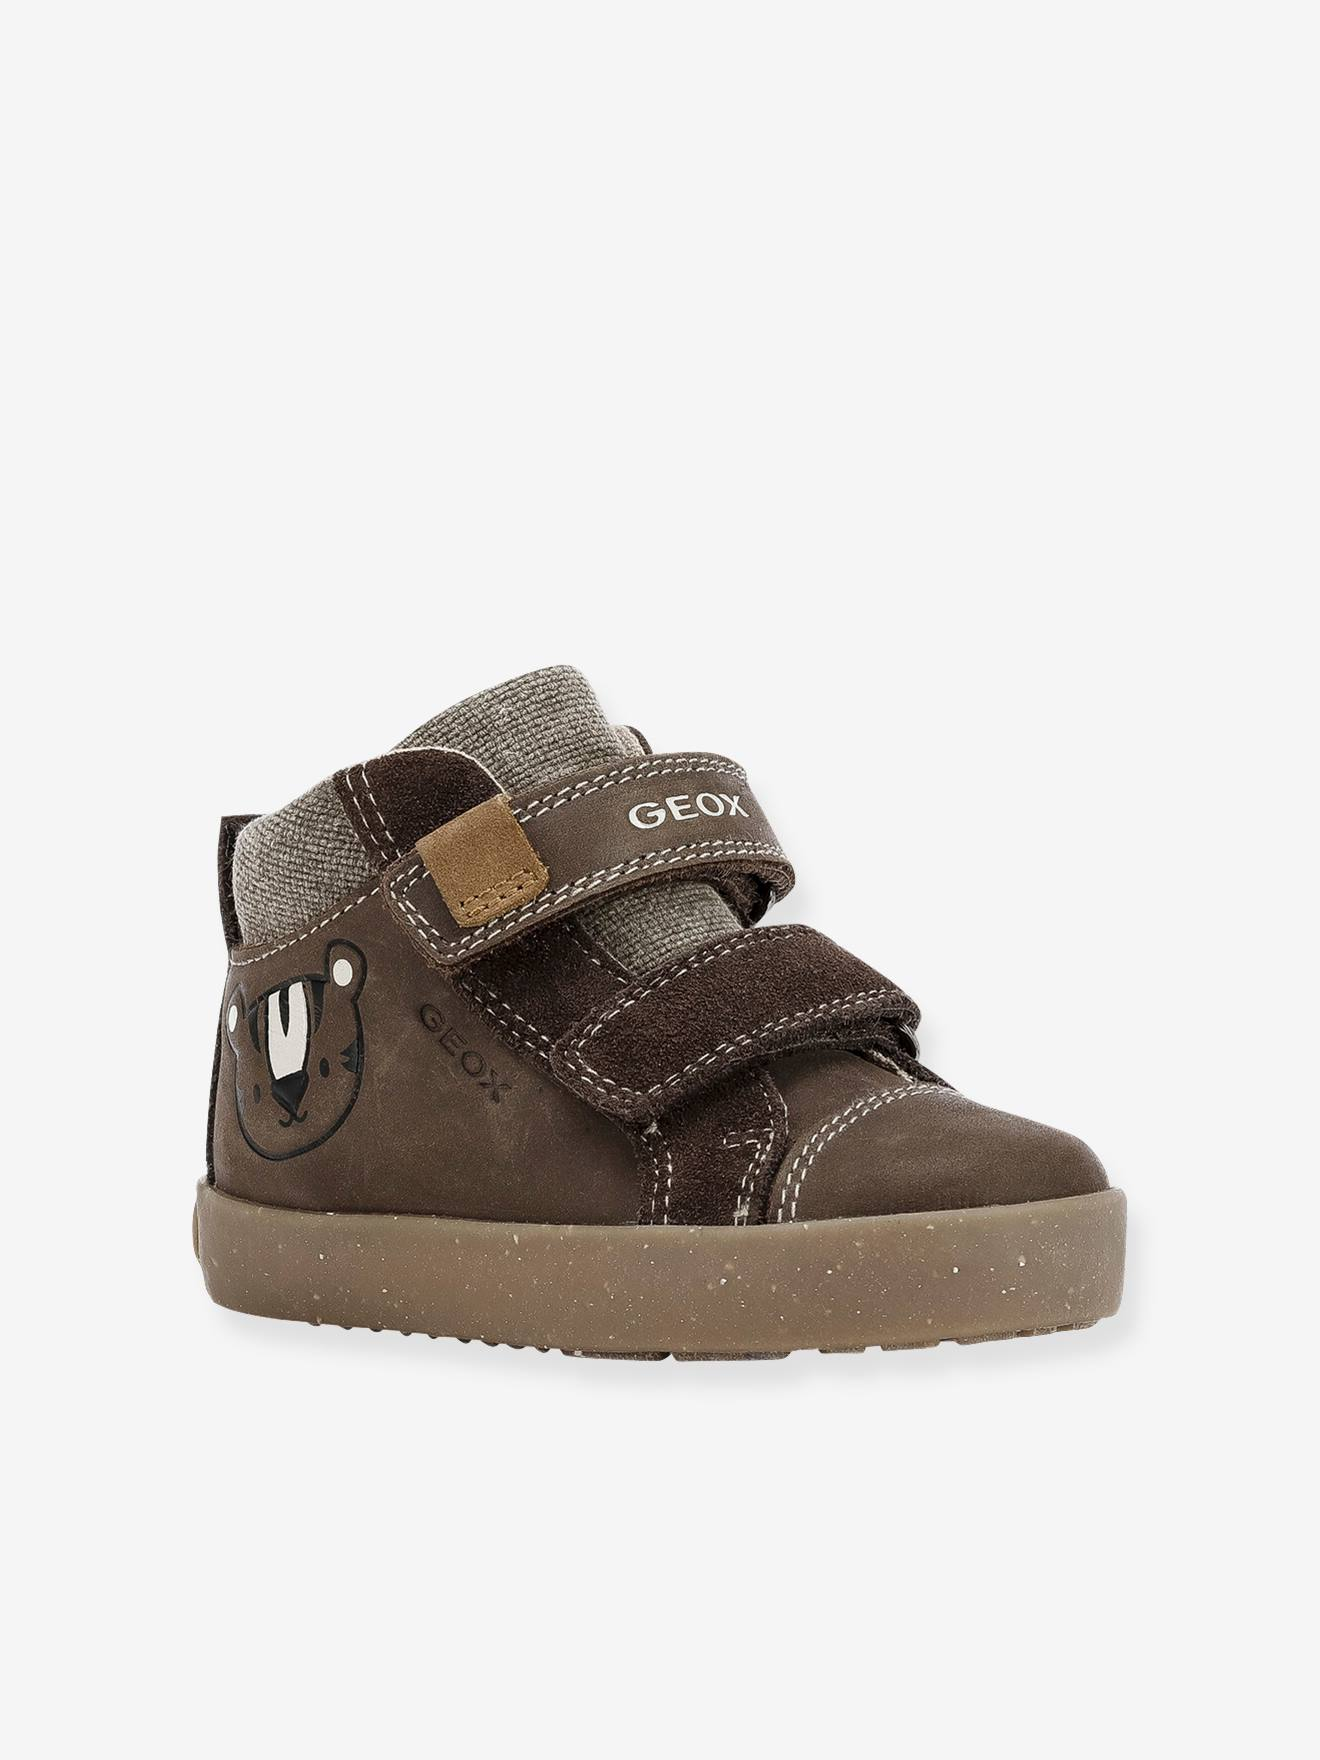 Trainers for Boys, B Kilwi Boy F WWF, by GEOX® brown light solid, Shoes